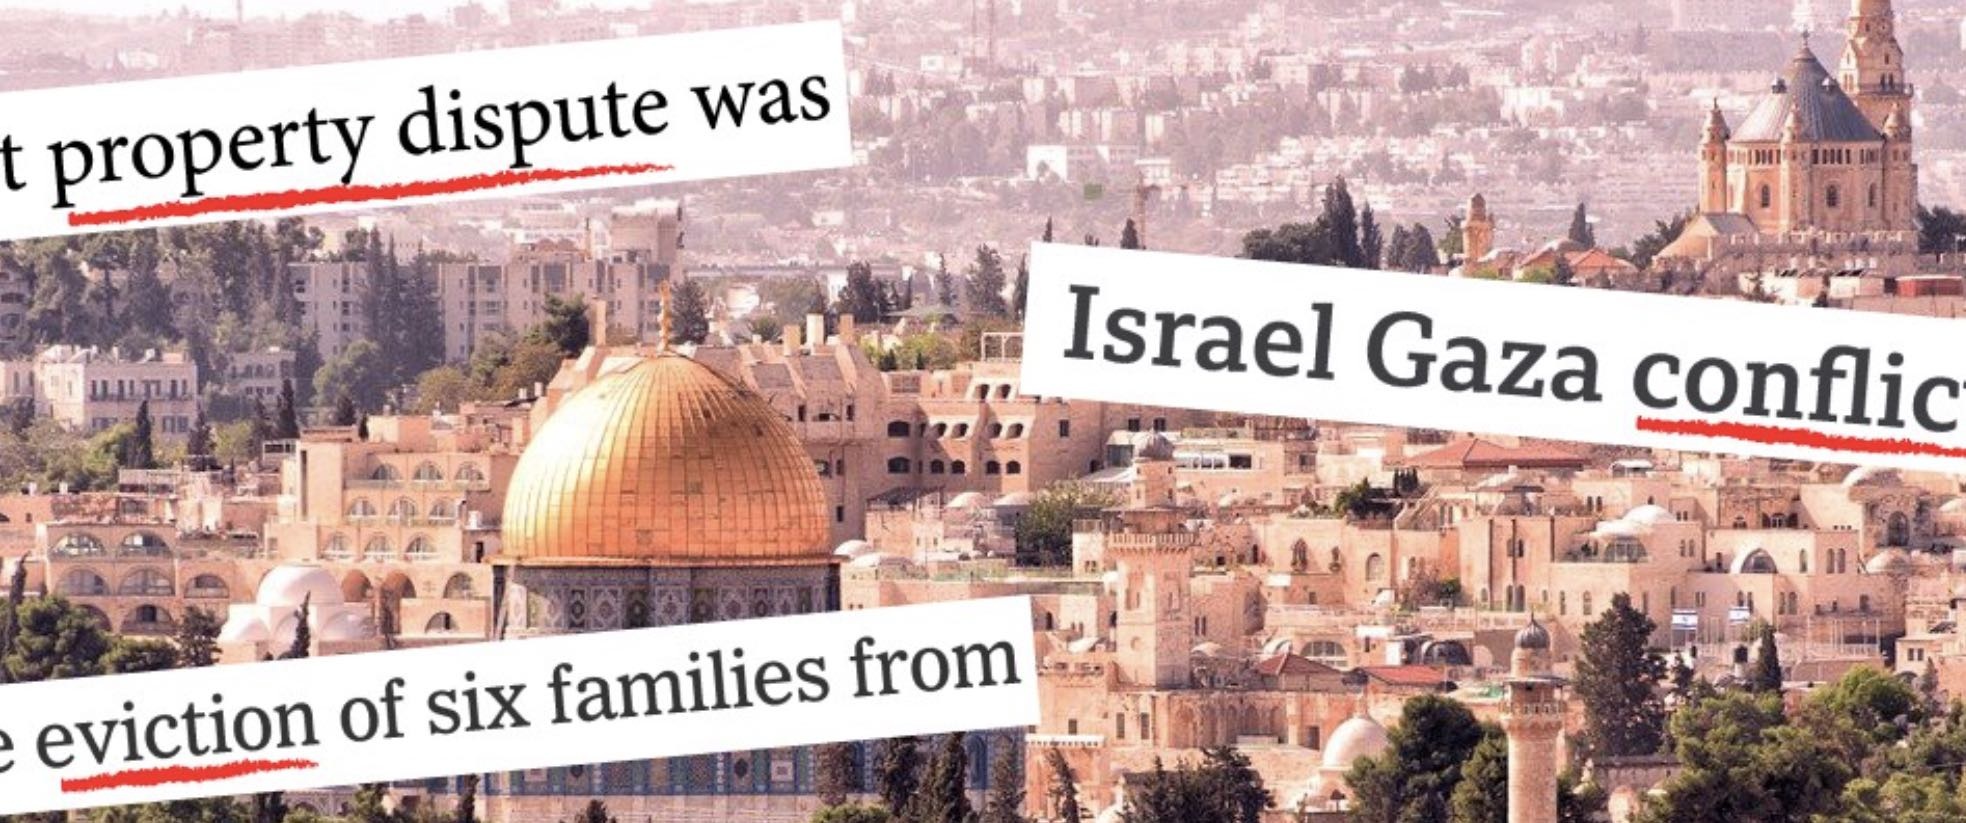 """Banner used in An Open Letter on US Media coverage of Palestine, shows Al Aqsa Mosque and has phrases with underlined words commonly used to hide the truth of Israeli violence such as """"conflict"""", """"eviction"""" and """"property dispute"""""""